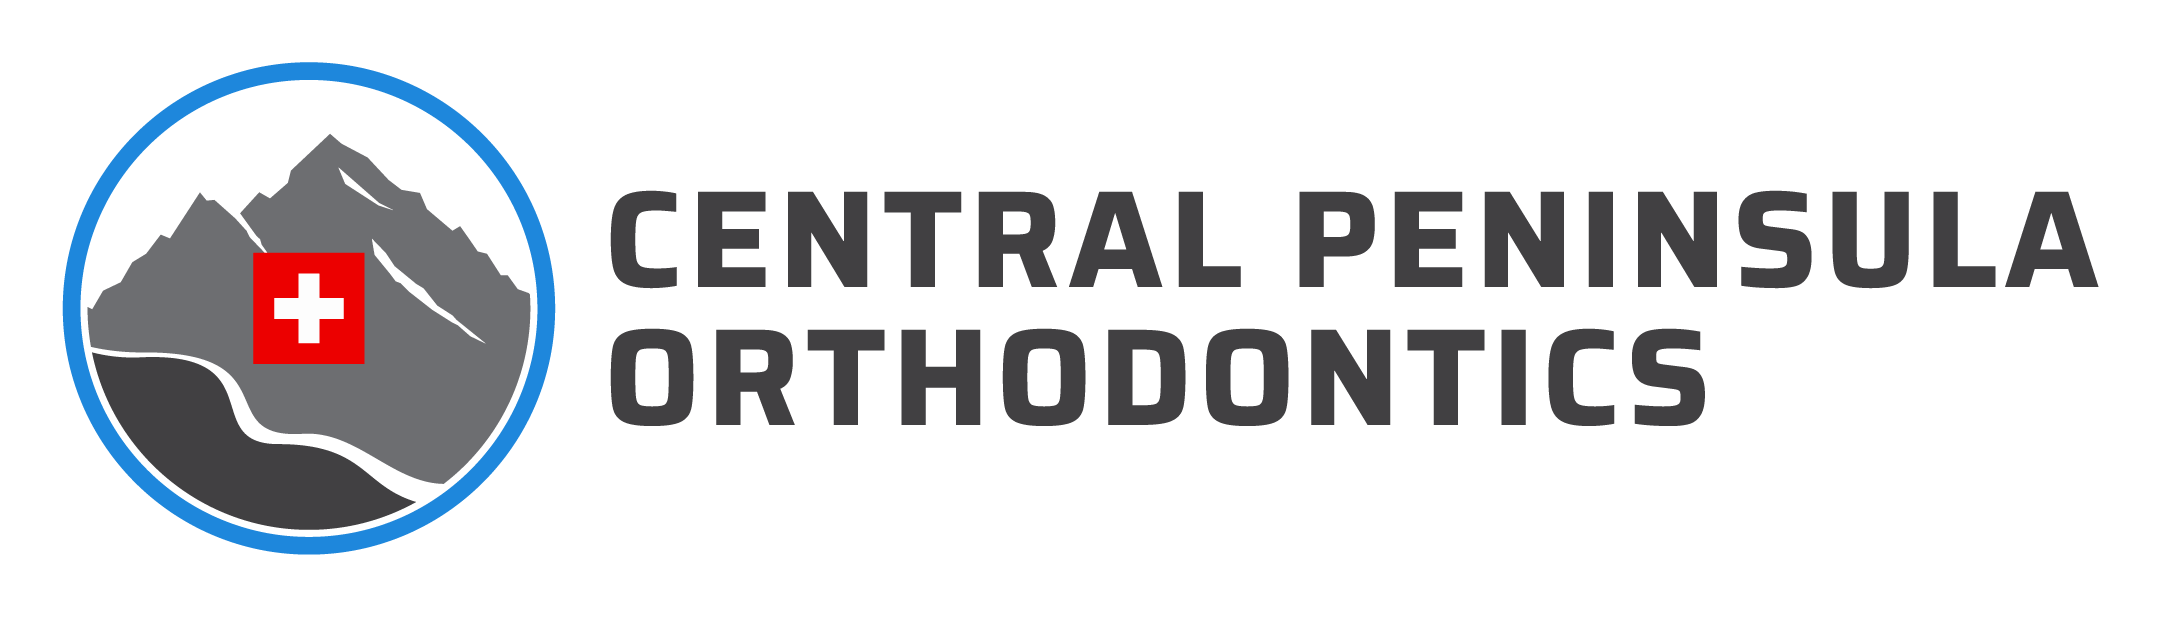 central peninsula orthodontics logo